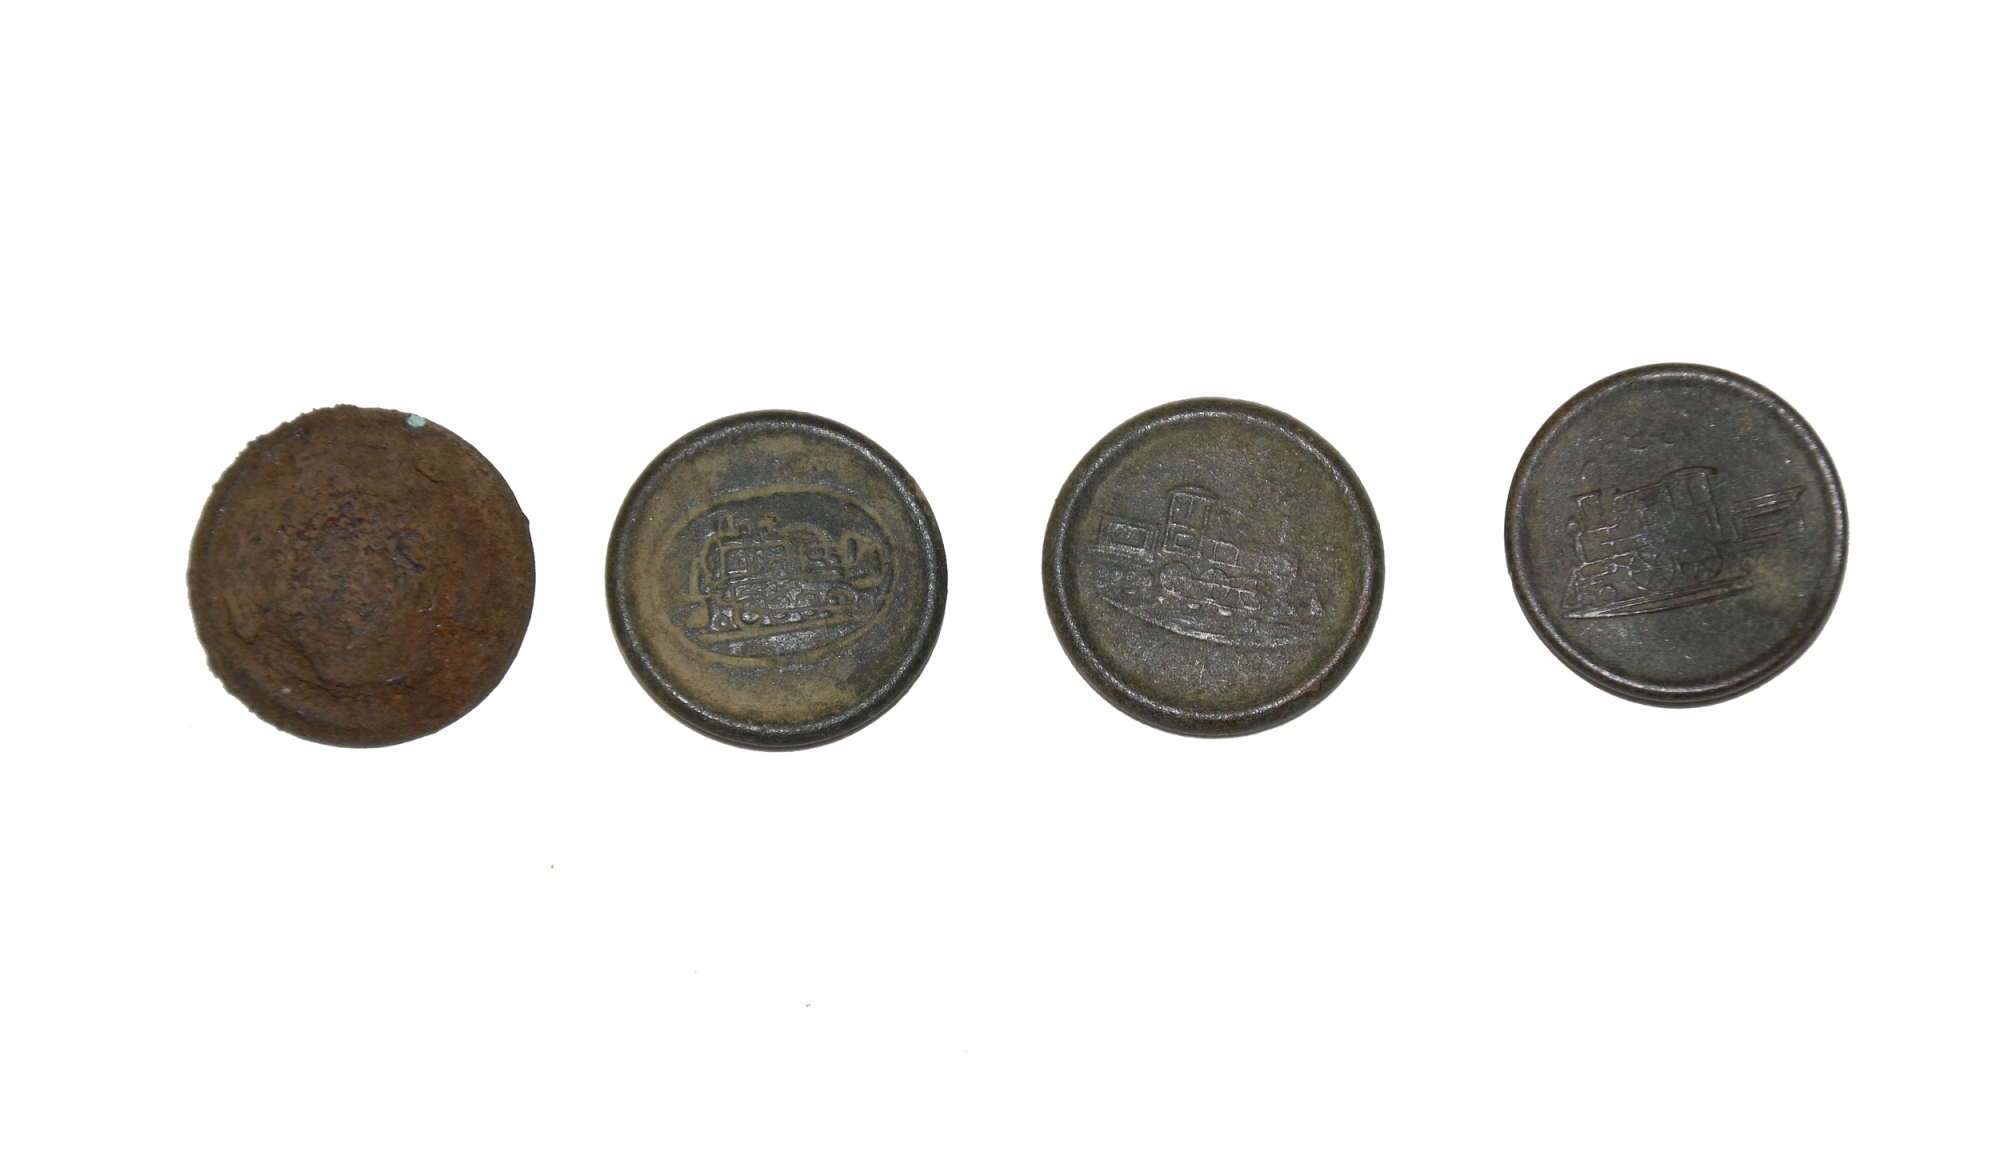 CIVIL WAR RAILROAD BUTTONS